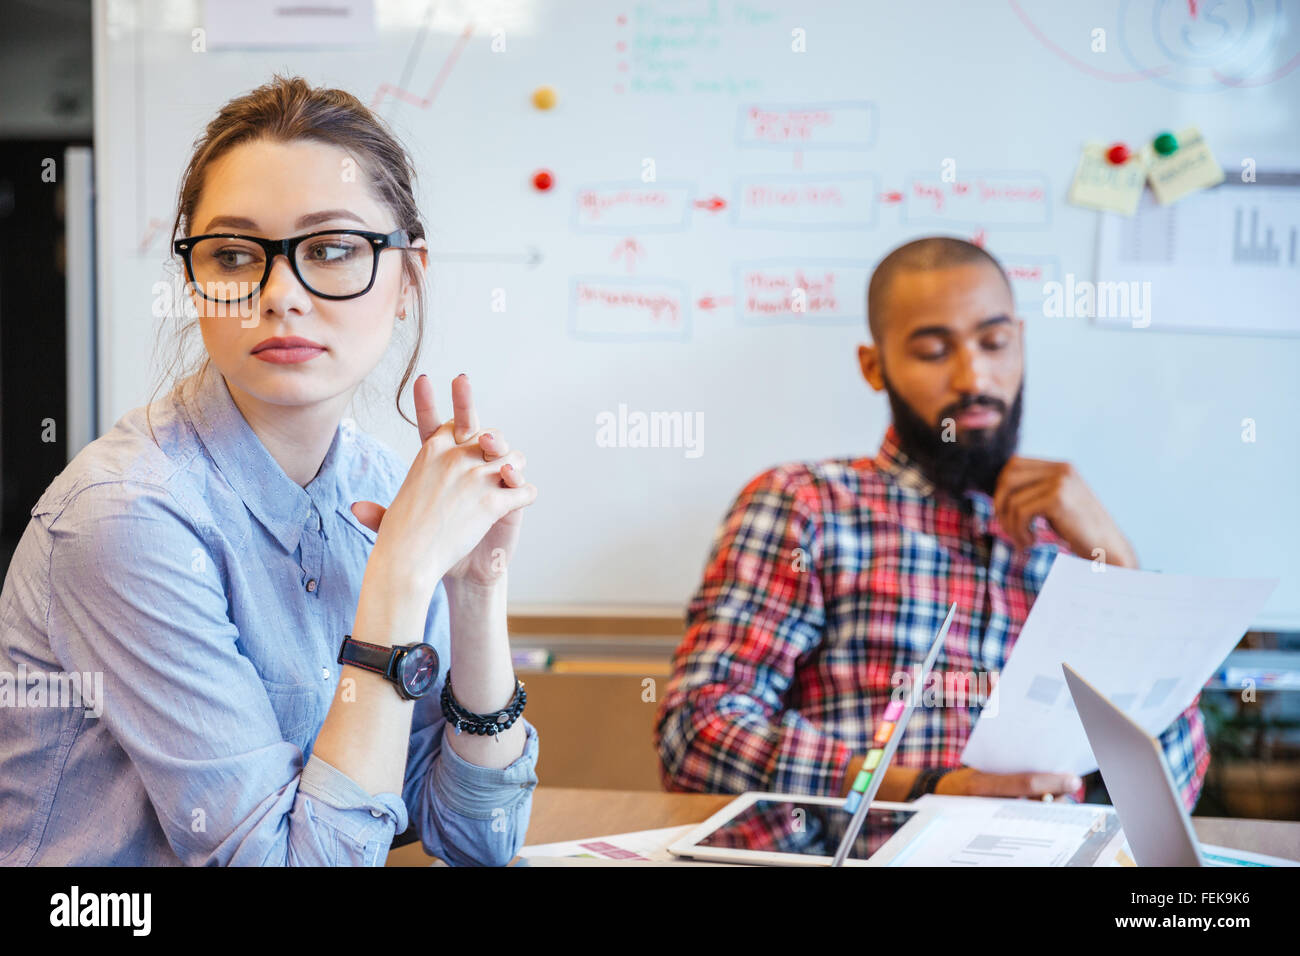 Pensive young woman in glasses sitting in conference room and thinking while her male colleague reading - Stock Image